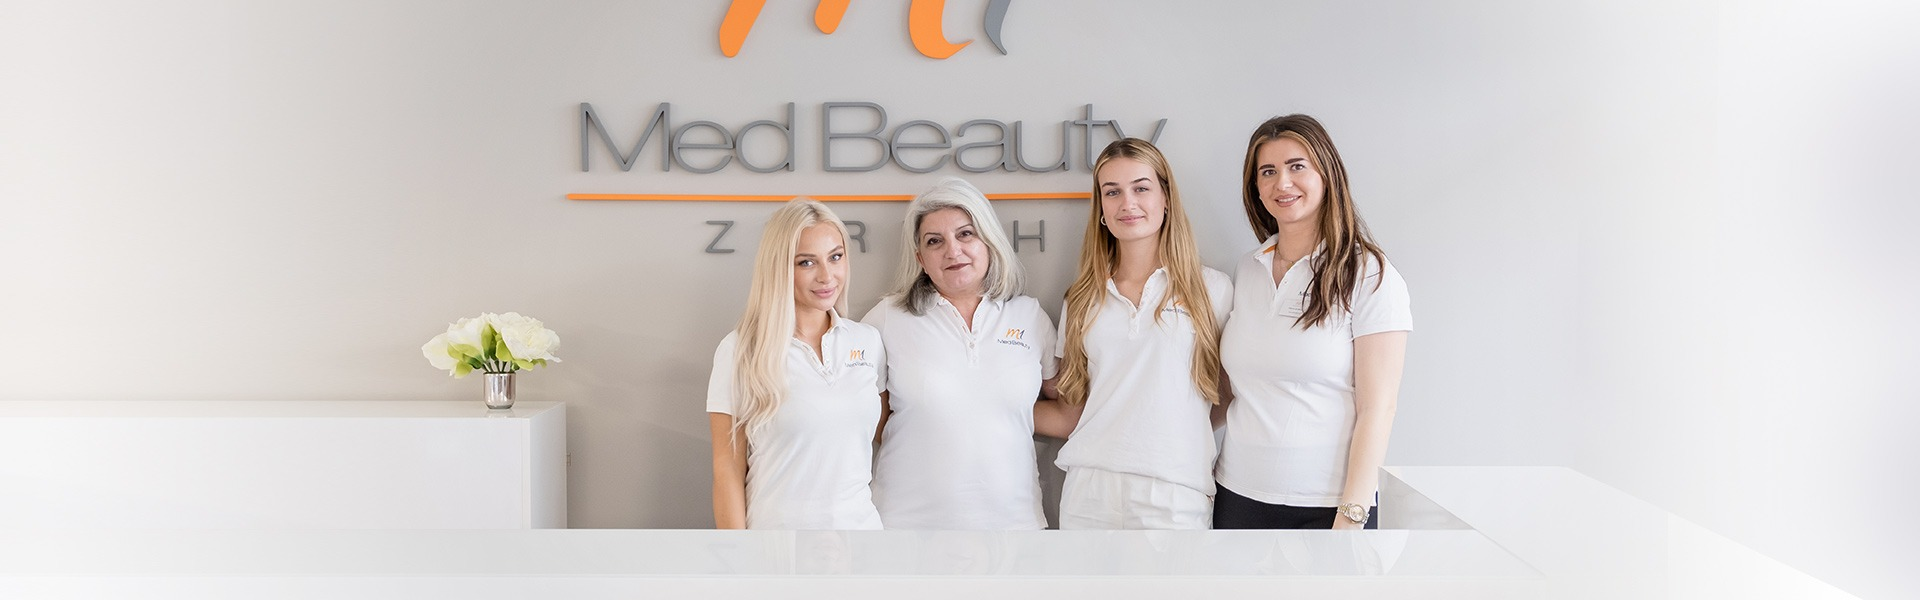 M1 Med Beauty Zürich Team